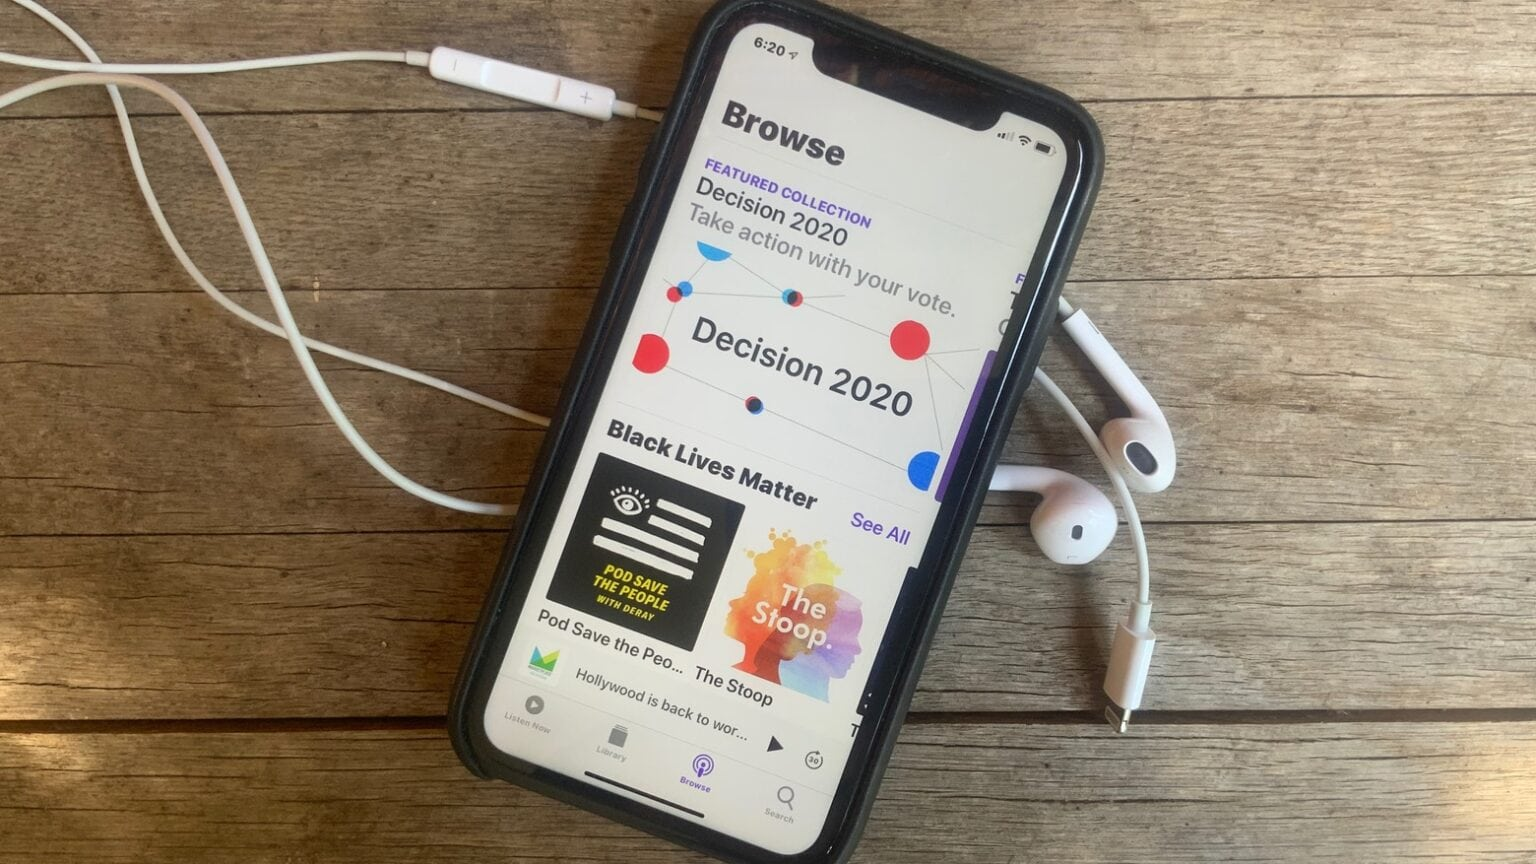 The Apple Podcasts app could be getting some new features in iOS 14.